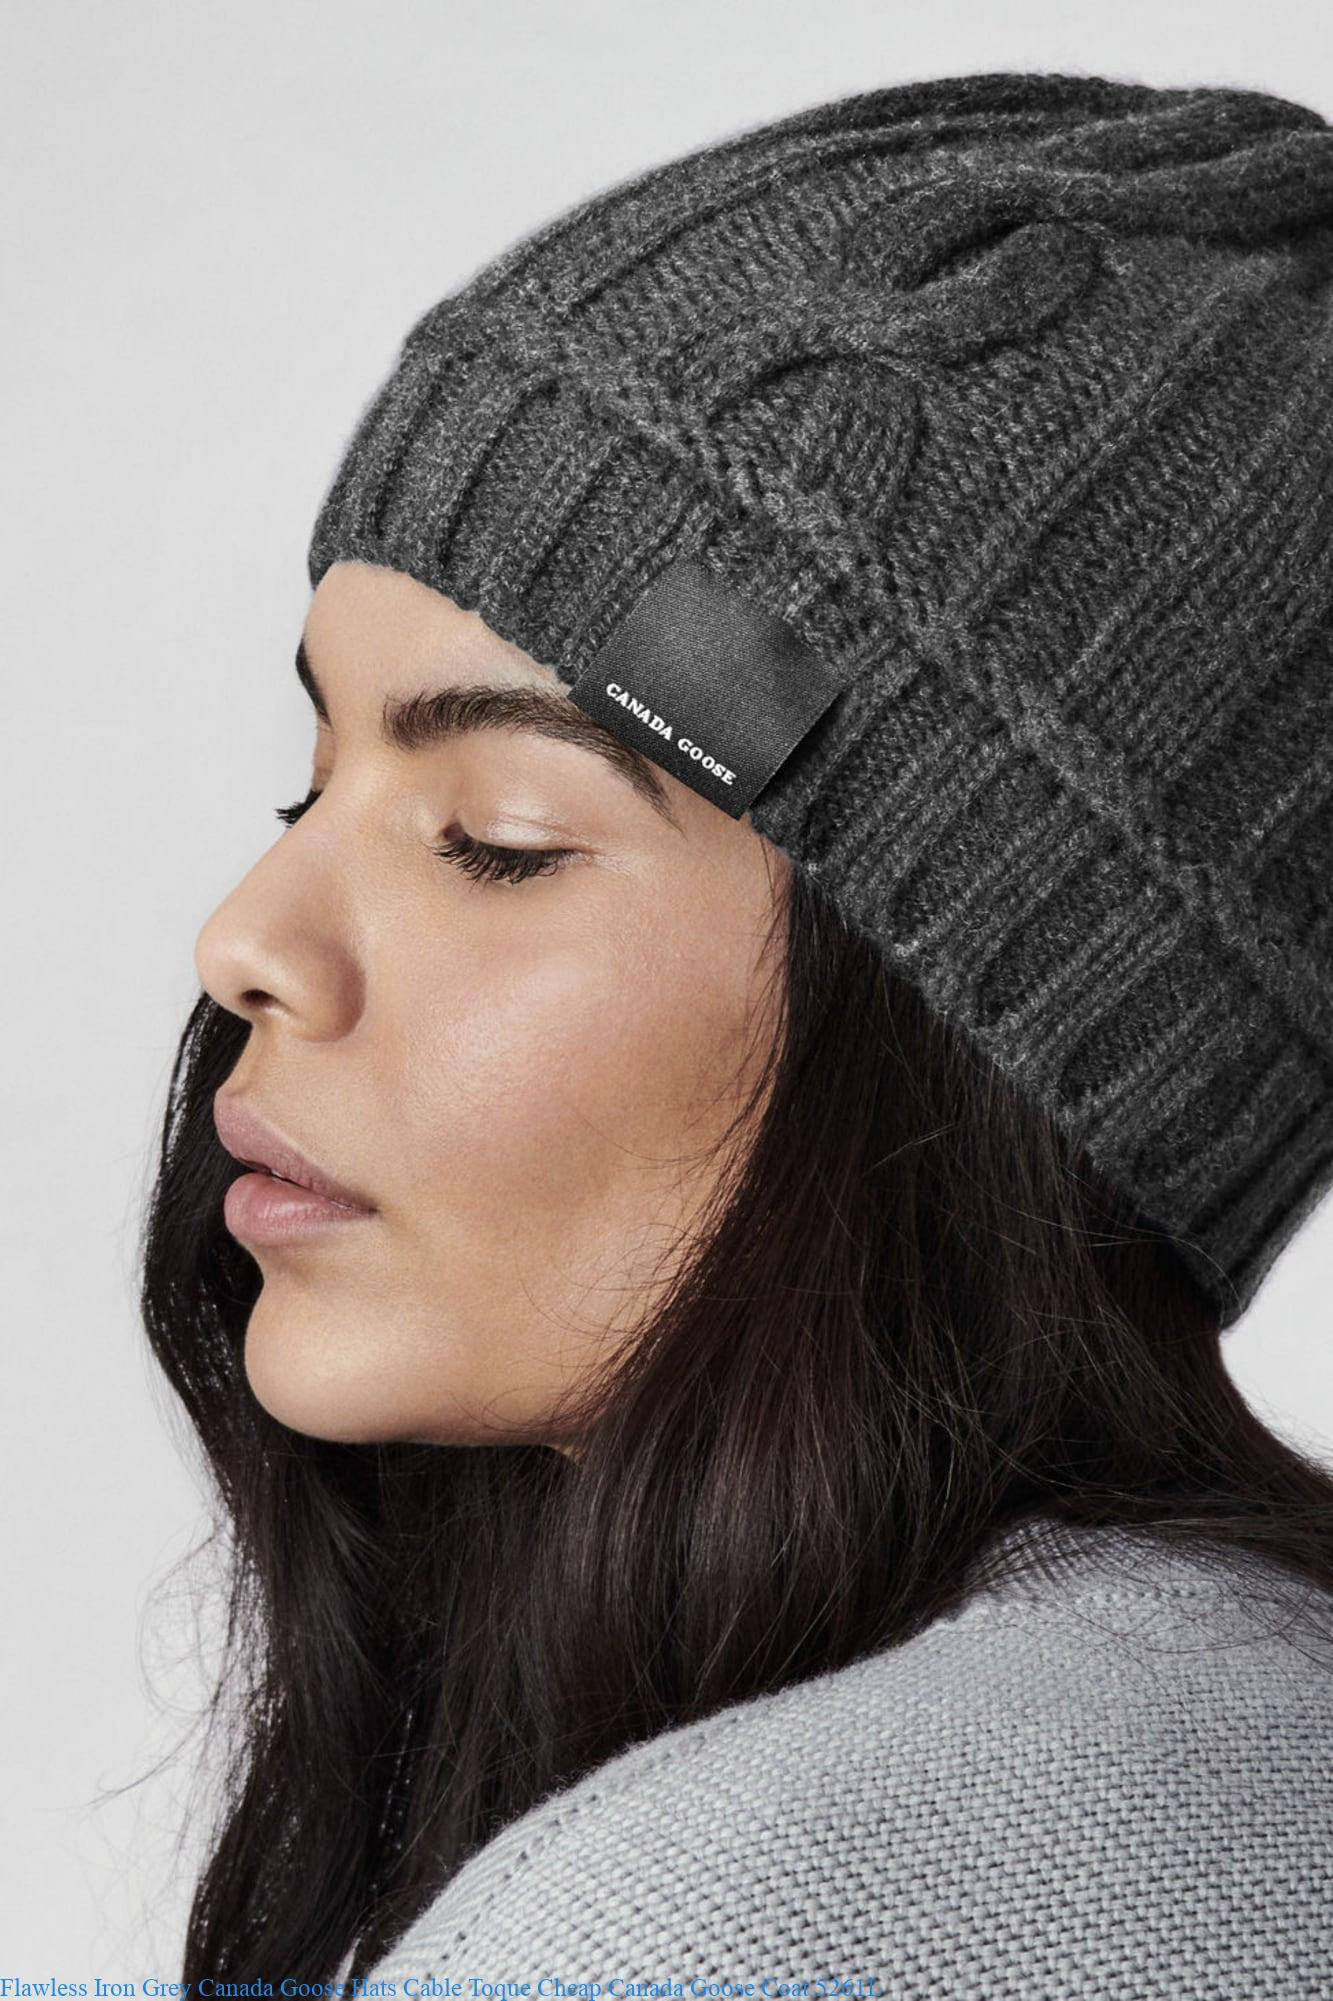 fd6540887a3 Flawless Iron Grey Canada Goose Hats Cable Toque Cheap Canada Goose Coat  5261L